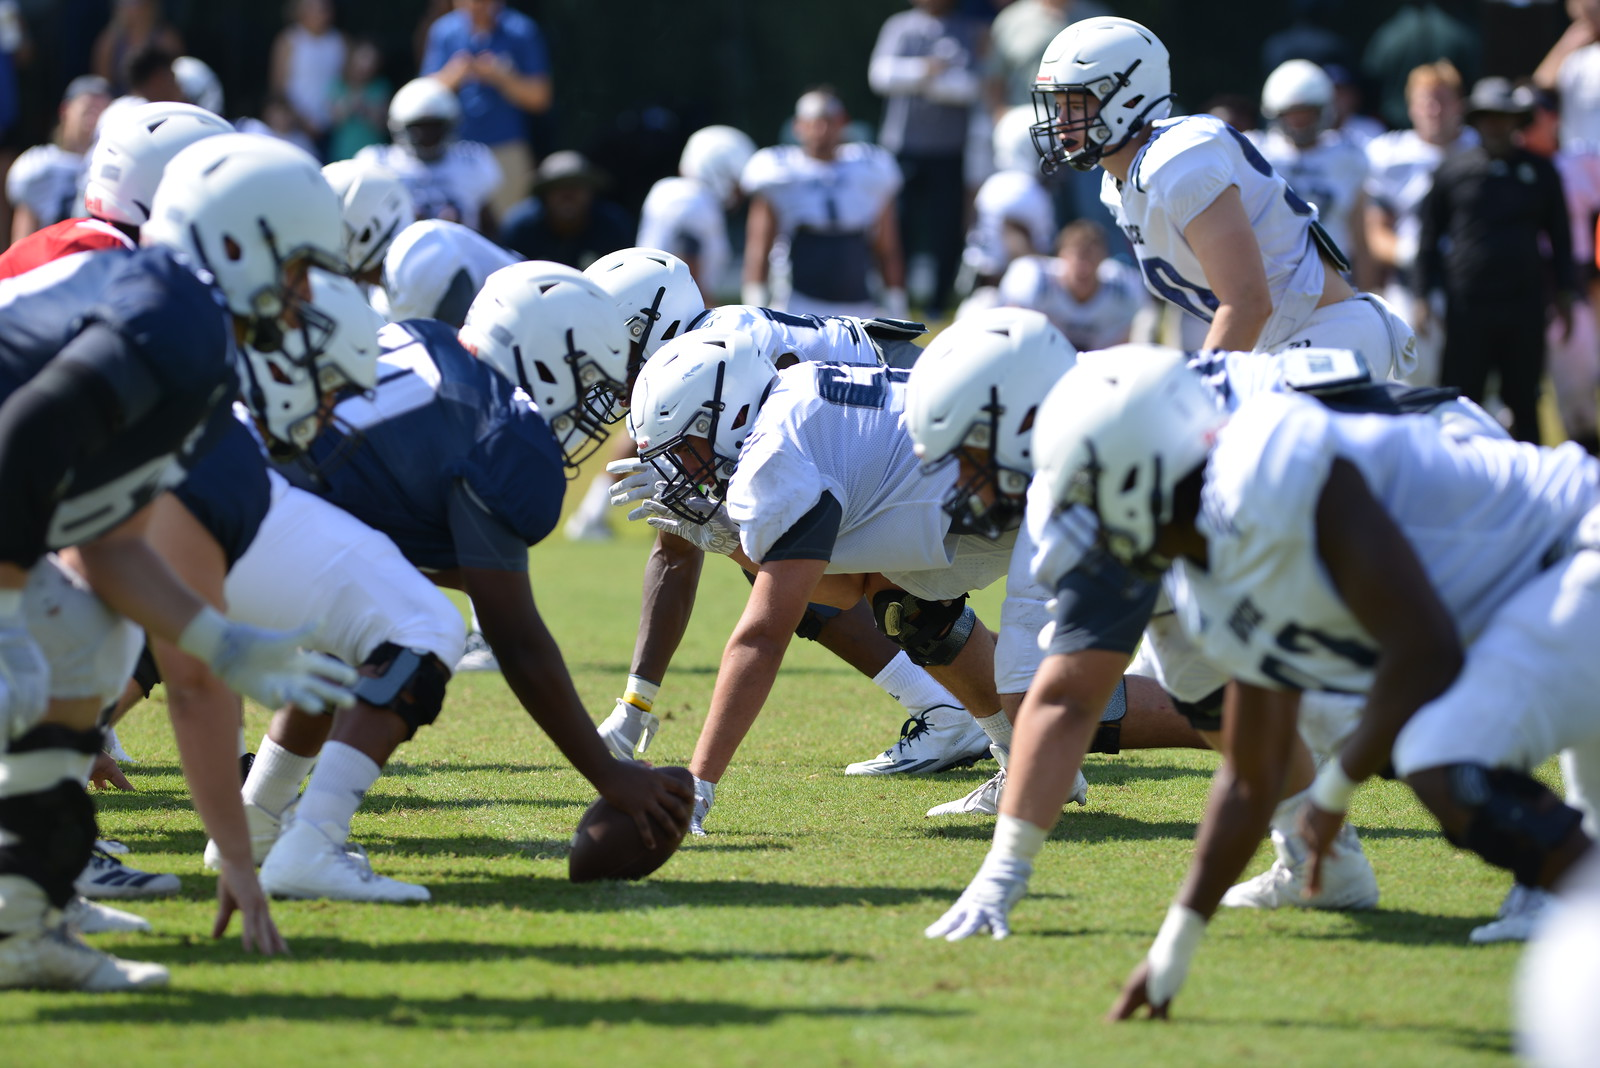 Rice football, offensive line, defensive line